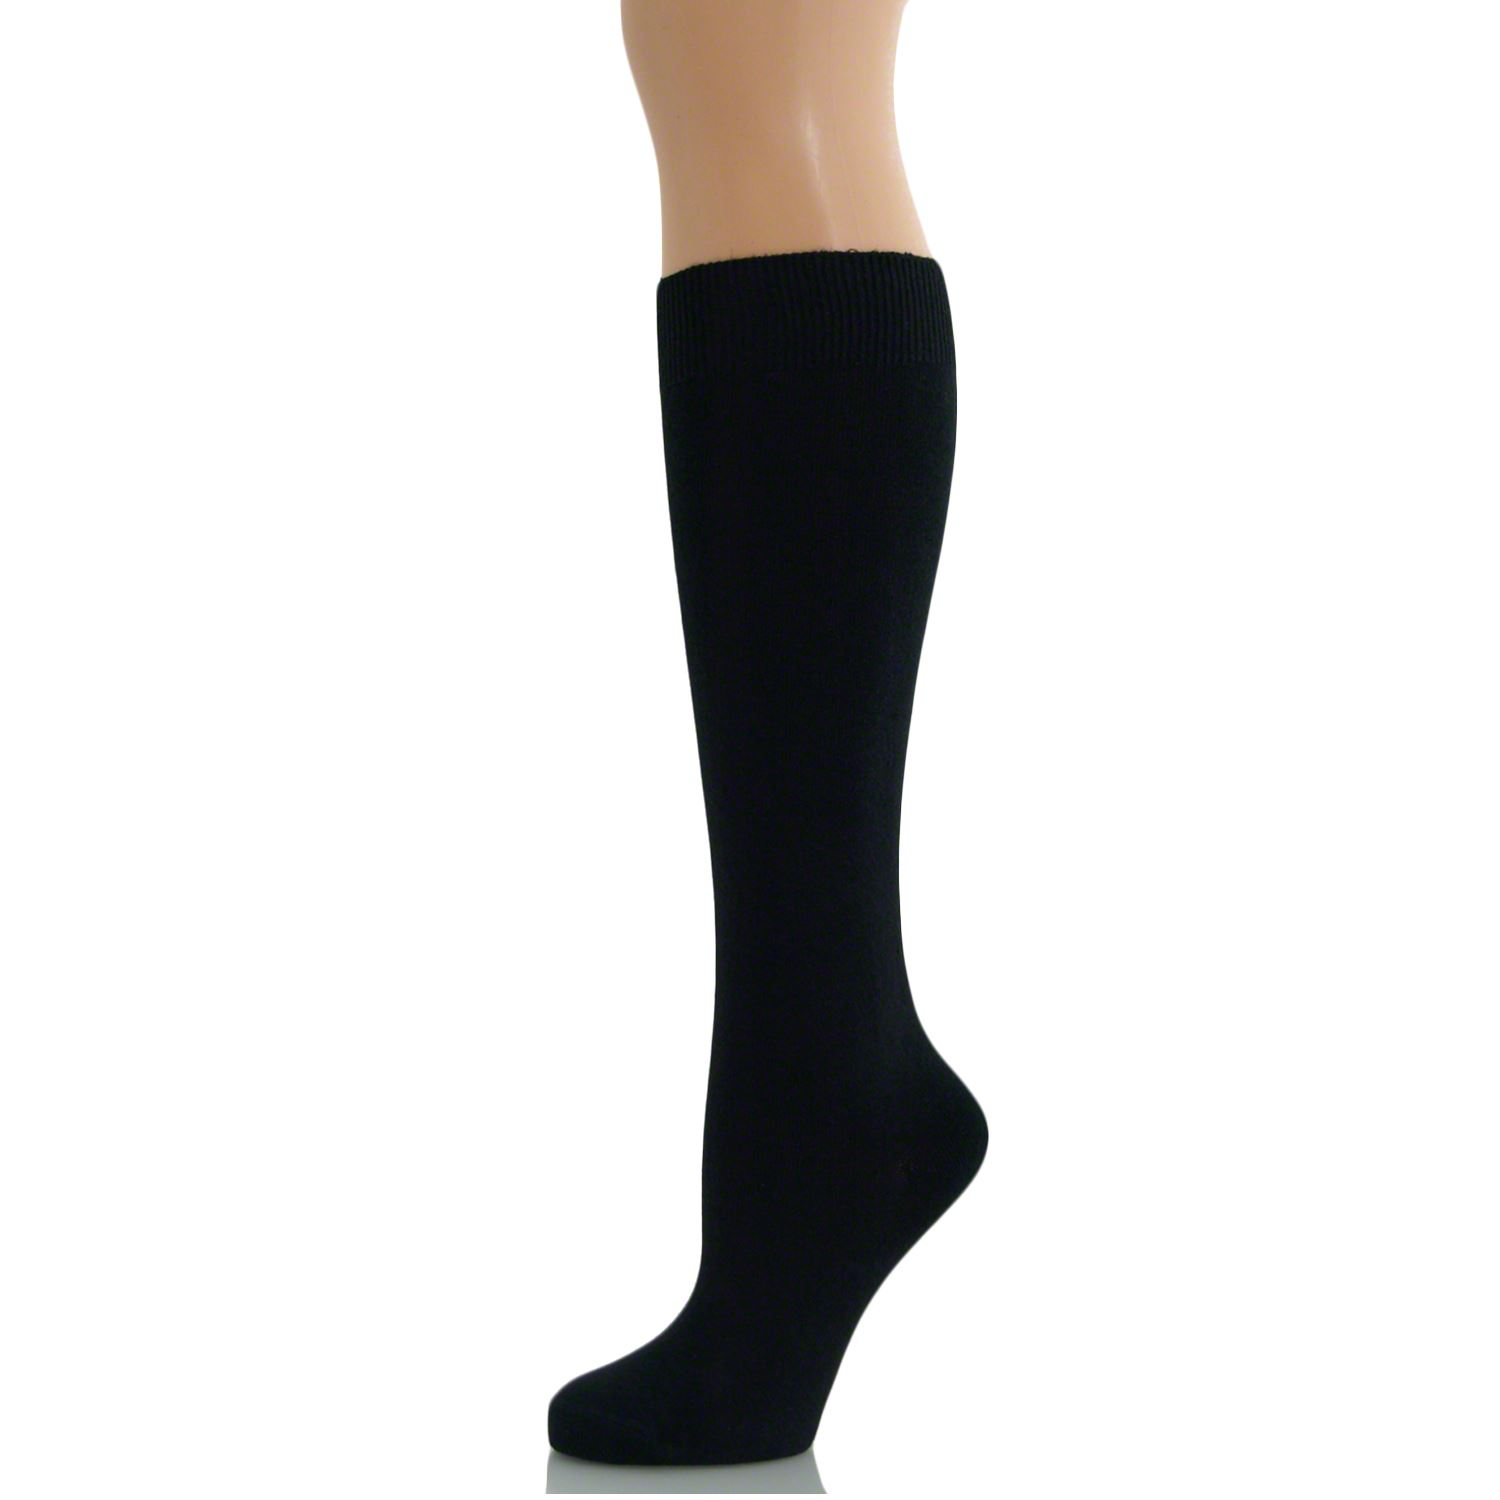 Knee High Socks. Double the height, double the fun right? With countless crazy variations allowing you to loudly express yourself, make your statement known: whether repping Frankenstein or Hedgehogs, there is certainly no shortage of colorful and unique knee high socks .